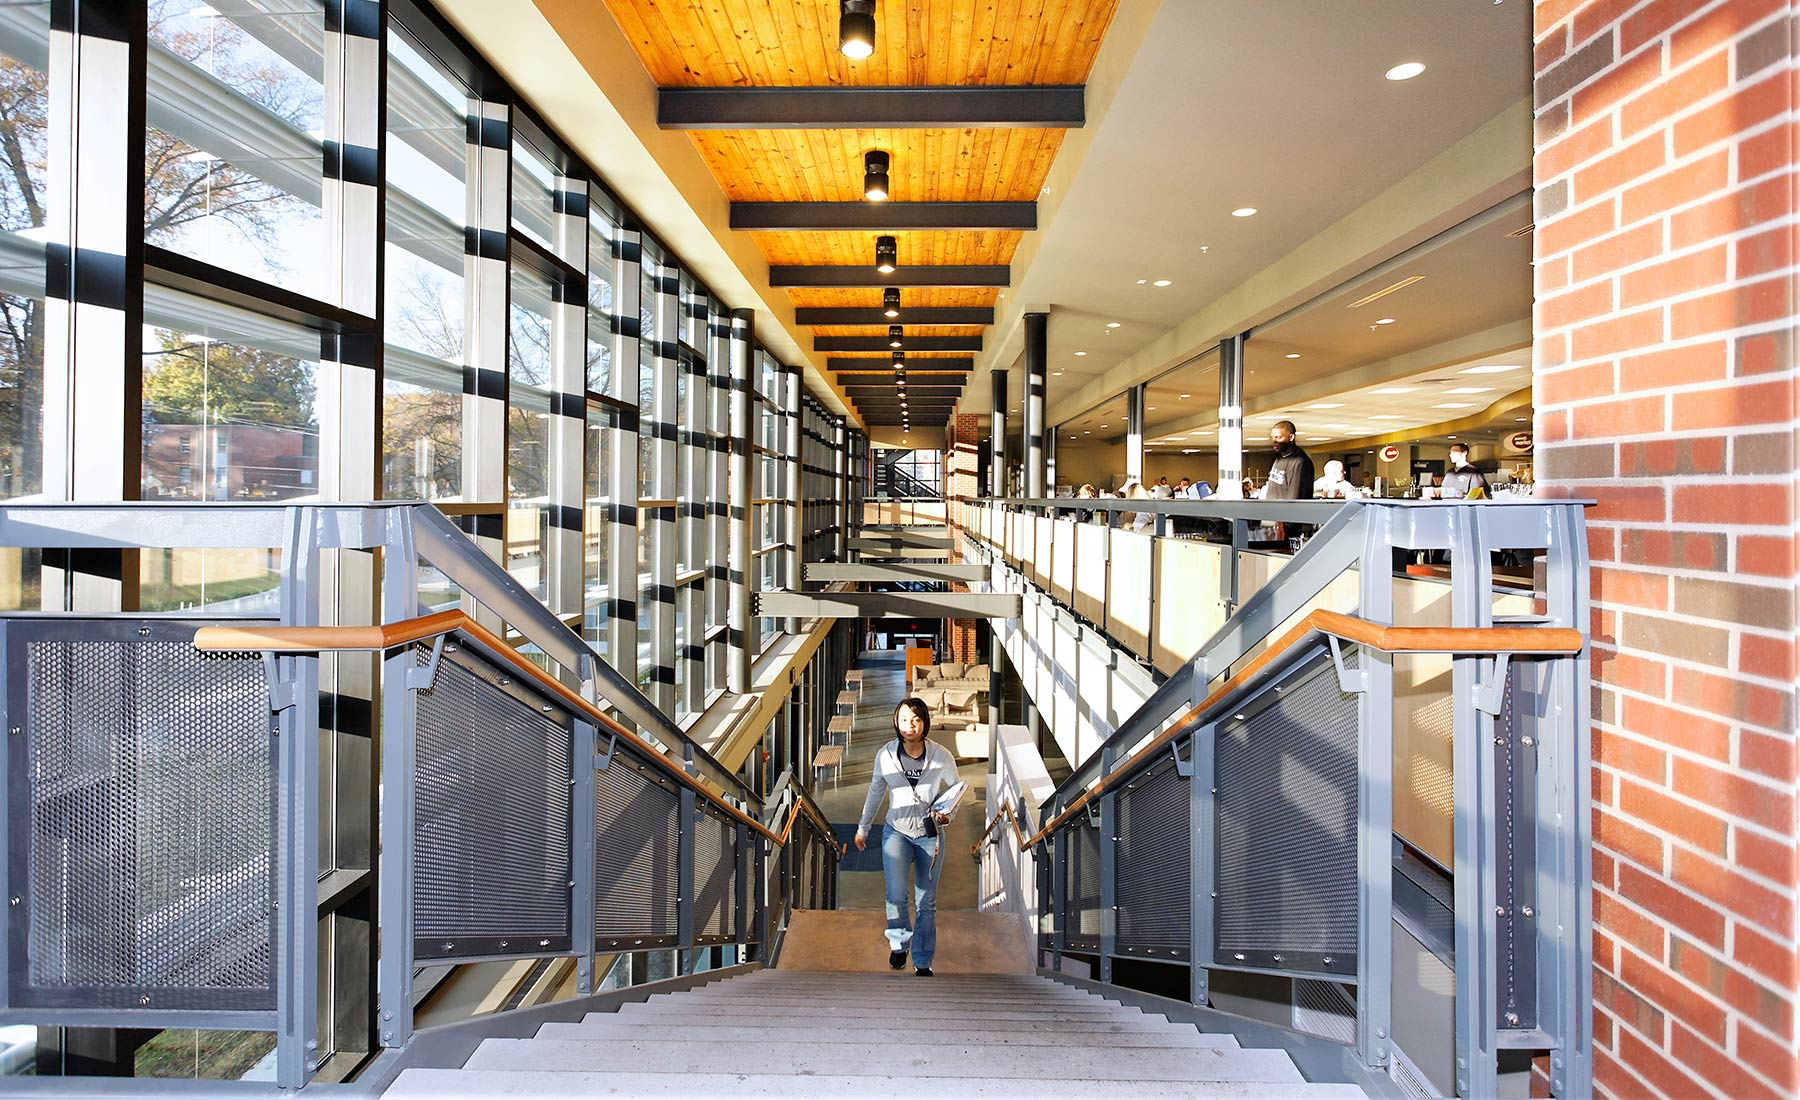 Averett University Student Center Architecture & Design